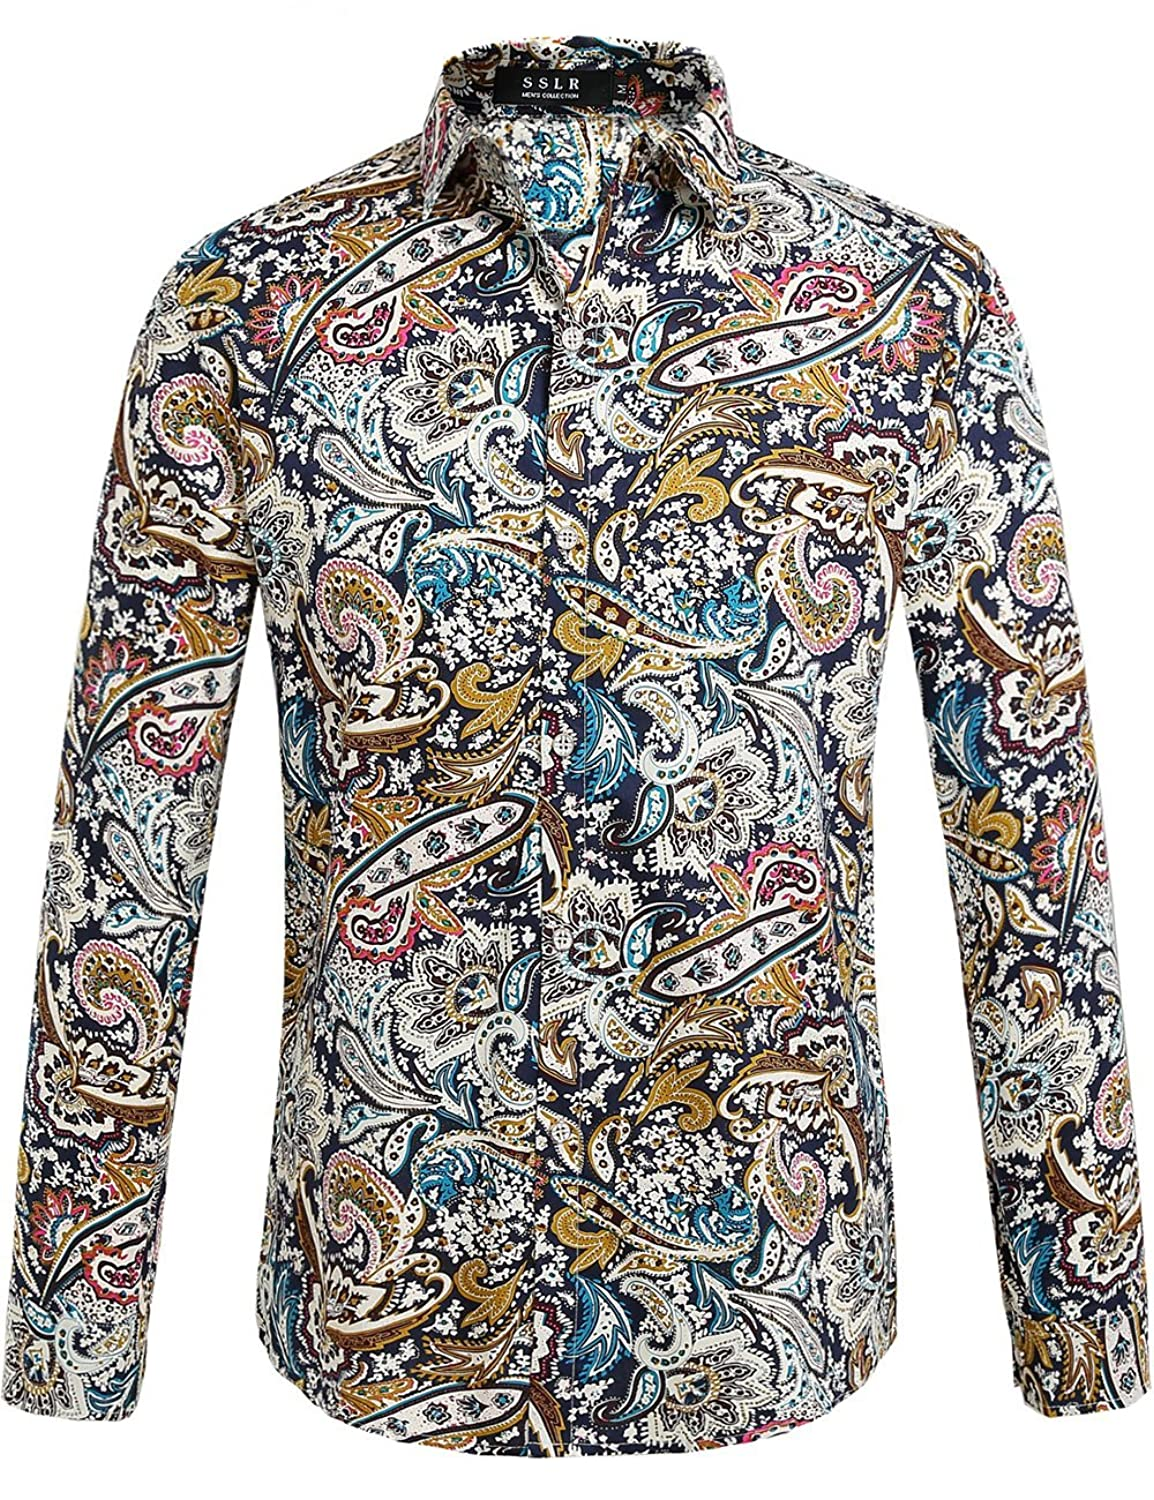 1960s – 70s Mens Shirts- Disco Shirts, Hippie Shirts SSLR Mens Paisley Cotton Long Sleeve Casual Button Down Shirt $26.00 AT vintagedancer.com